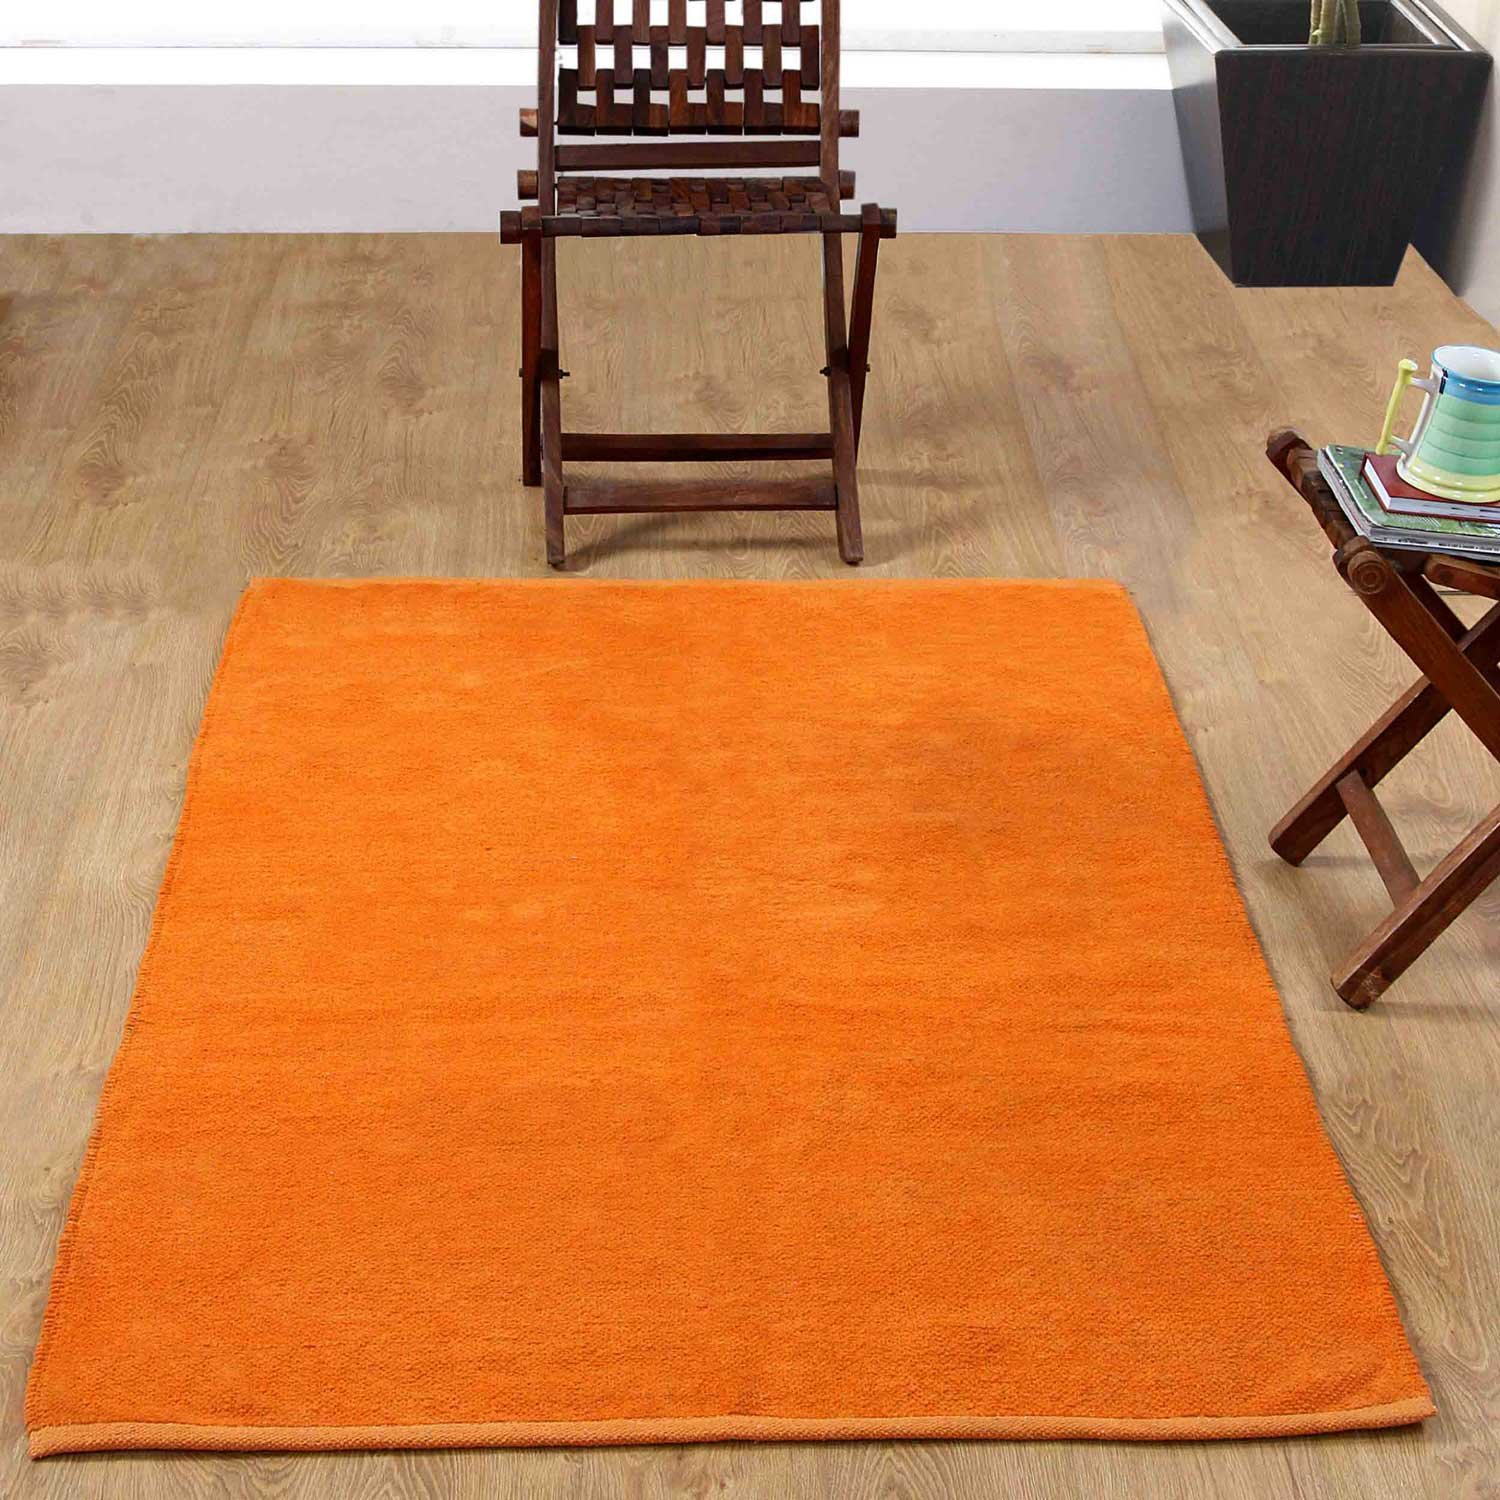 teal rug area rugs grey and best intended orange for amazing decor